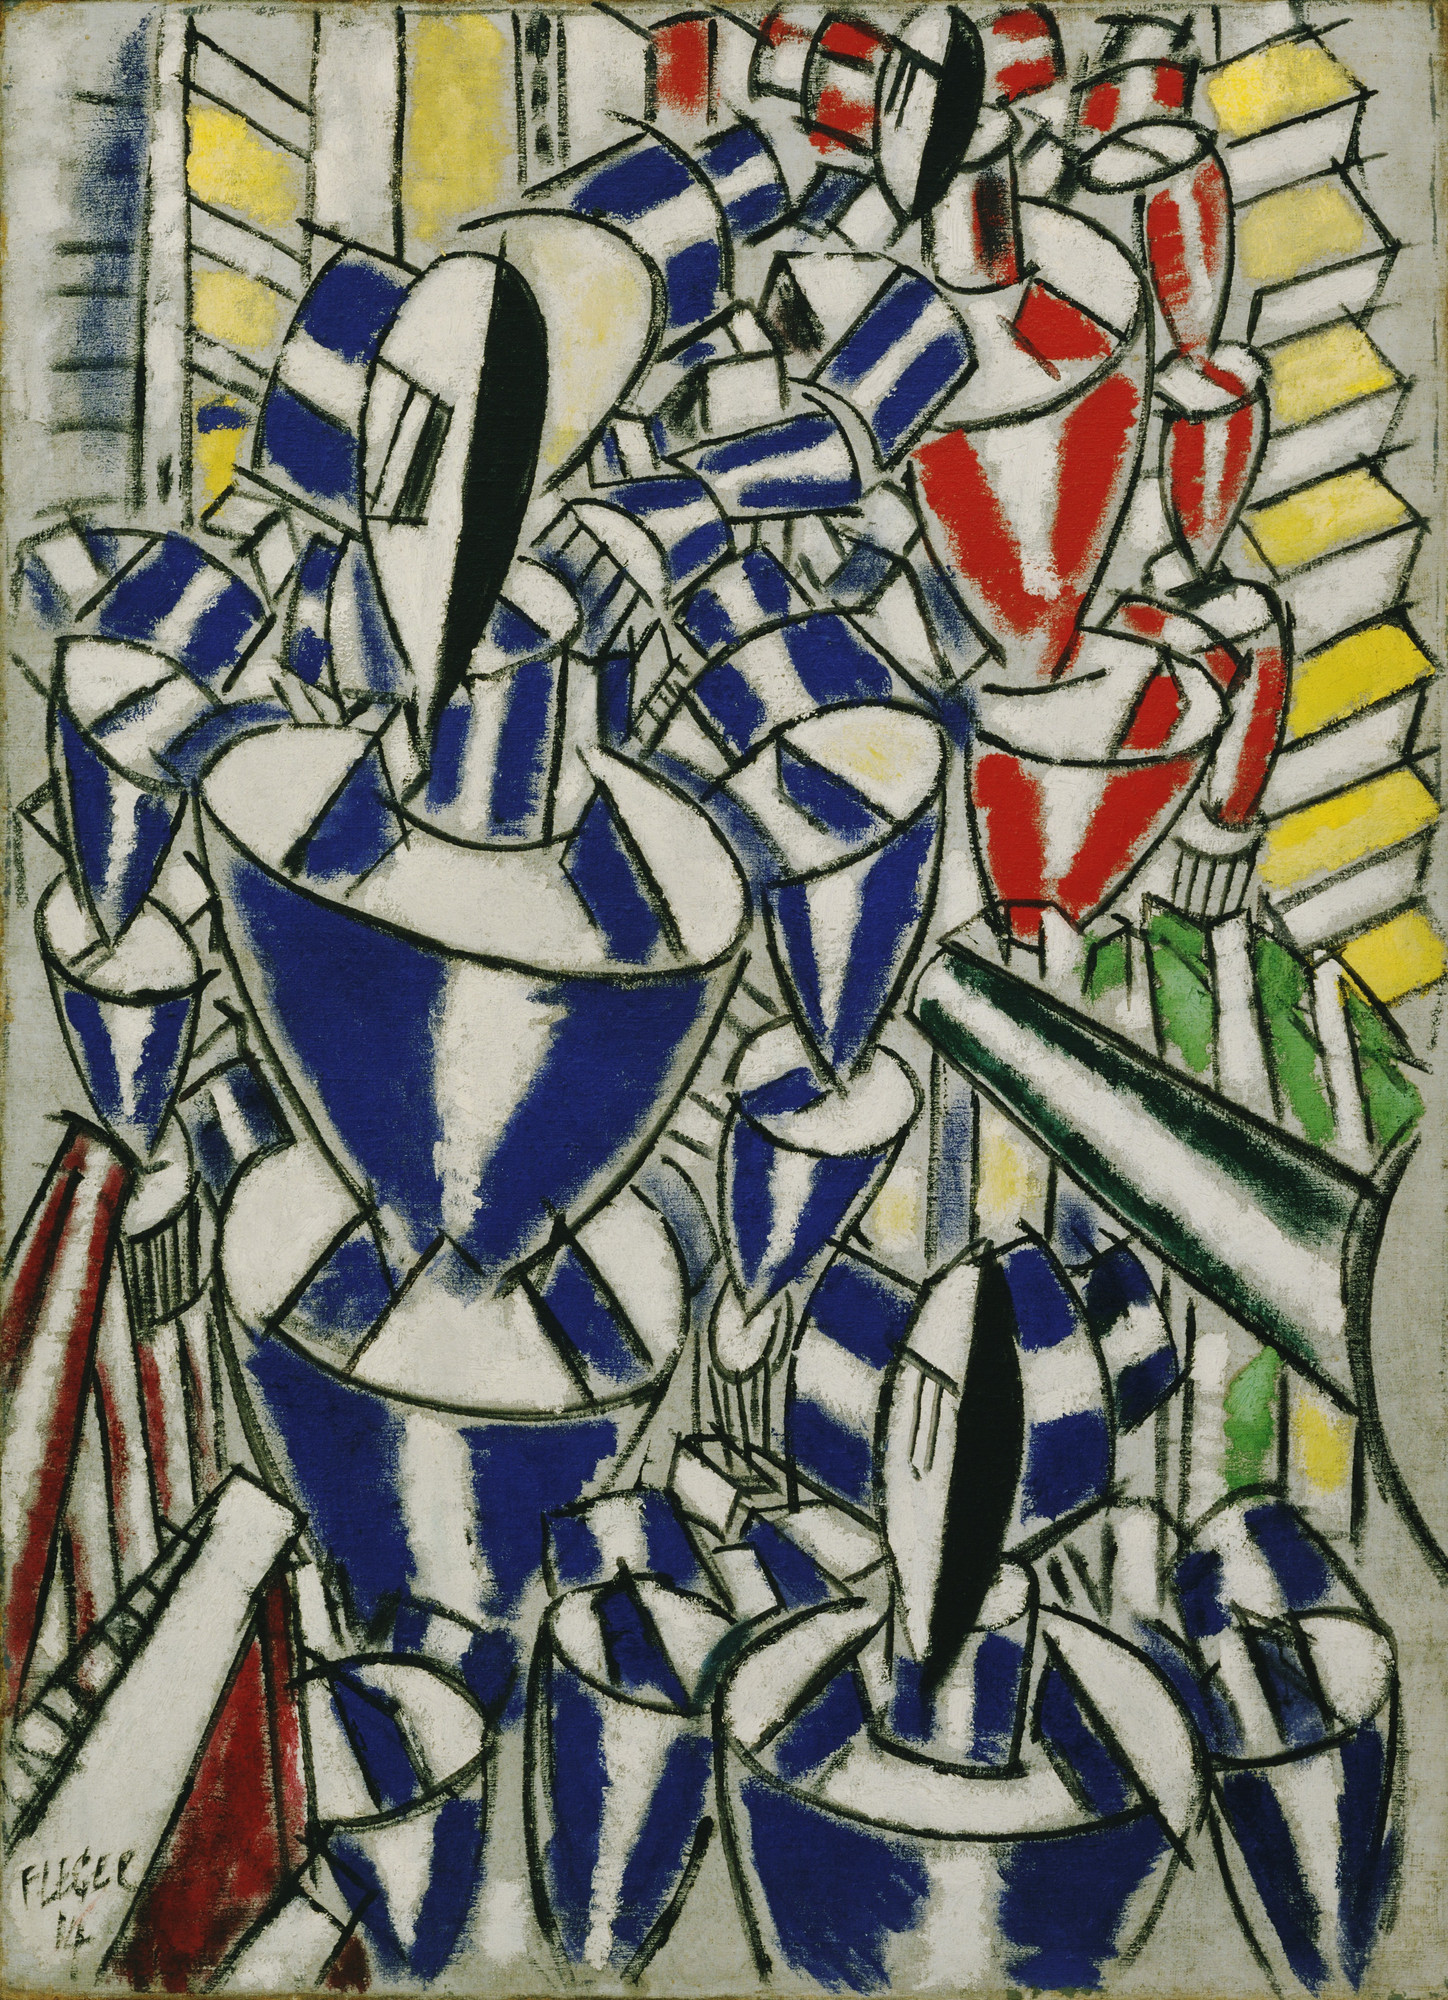 Fernand Léger. Exit the Ballets Russes. 1914